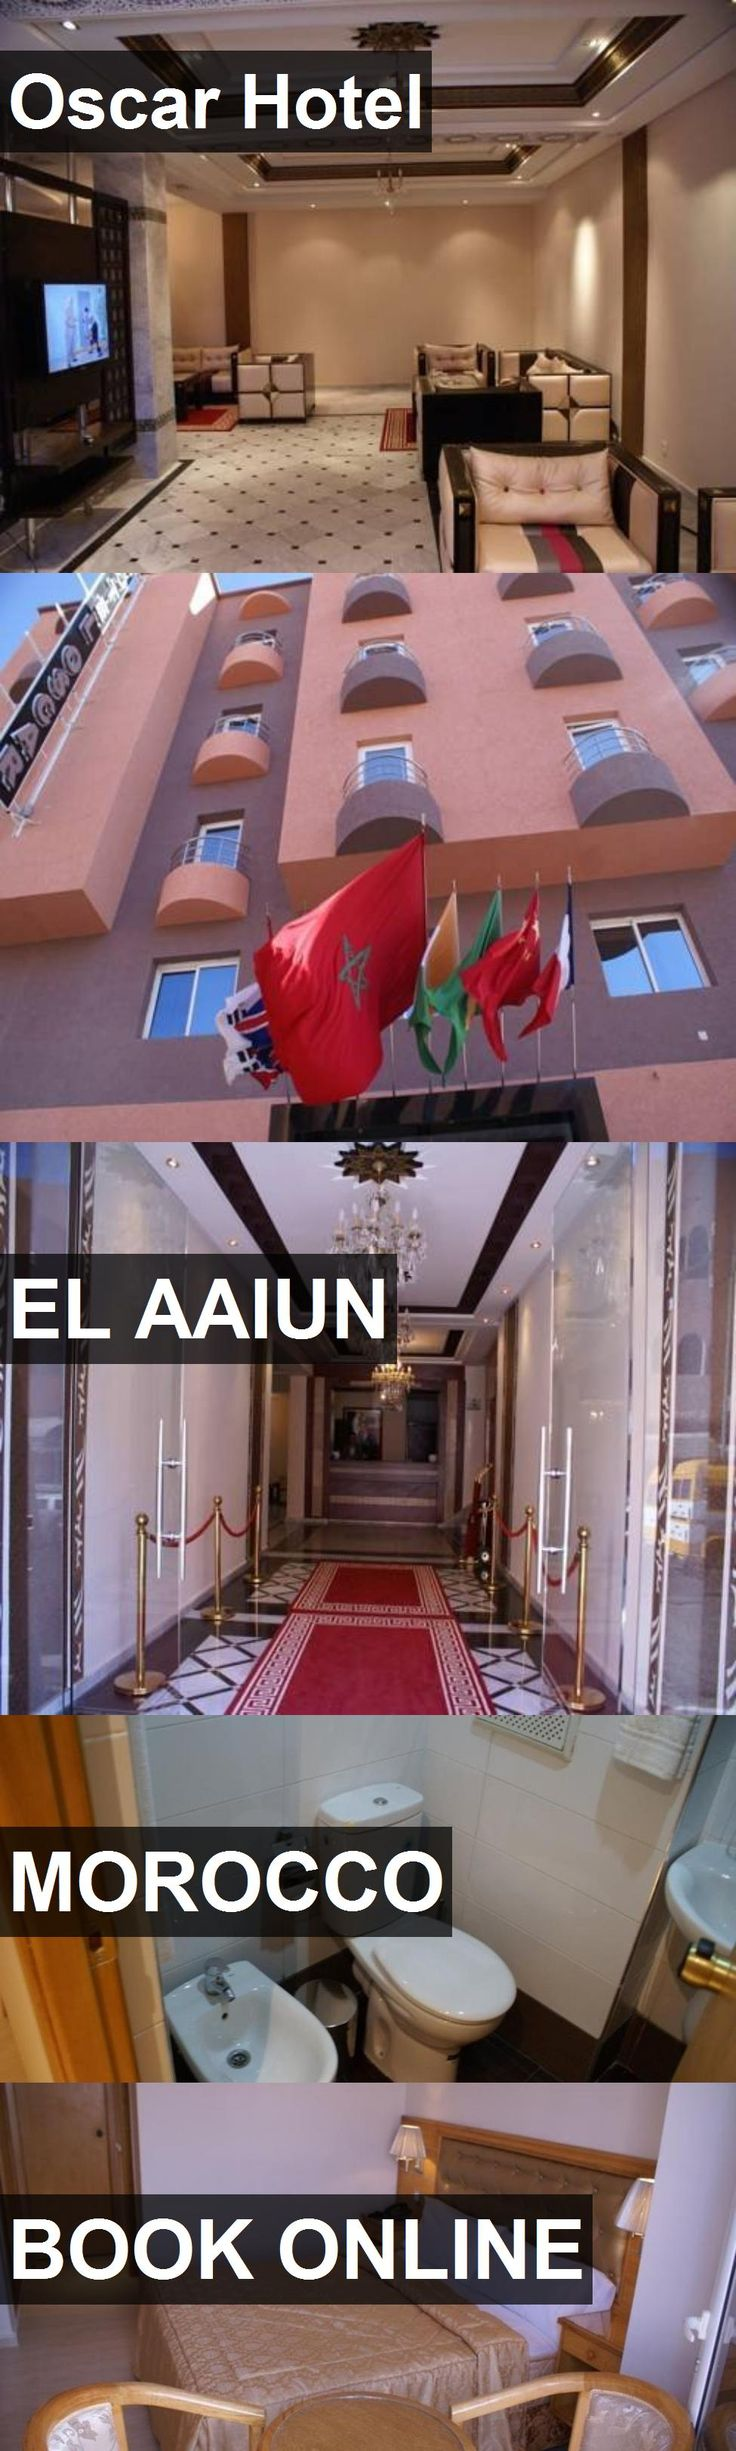 Oscar Hotel in El Aaiun, Morocco. For more information, photos, reviews and best prices please follow the link. #Morocco #ElAaiun #travel #vacation #hotel